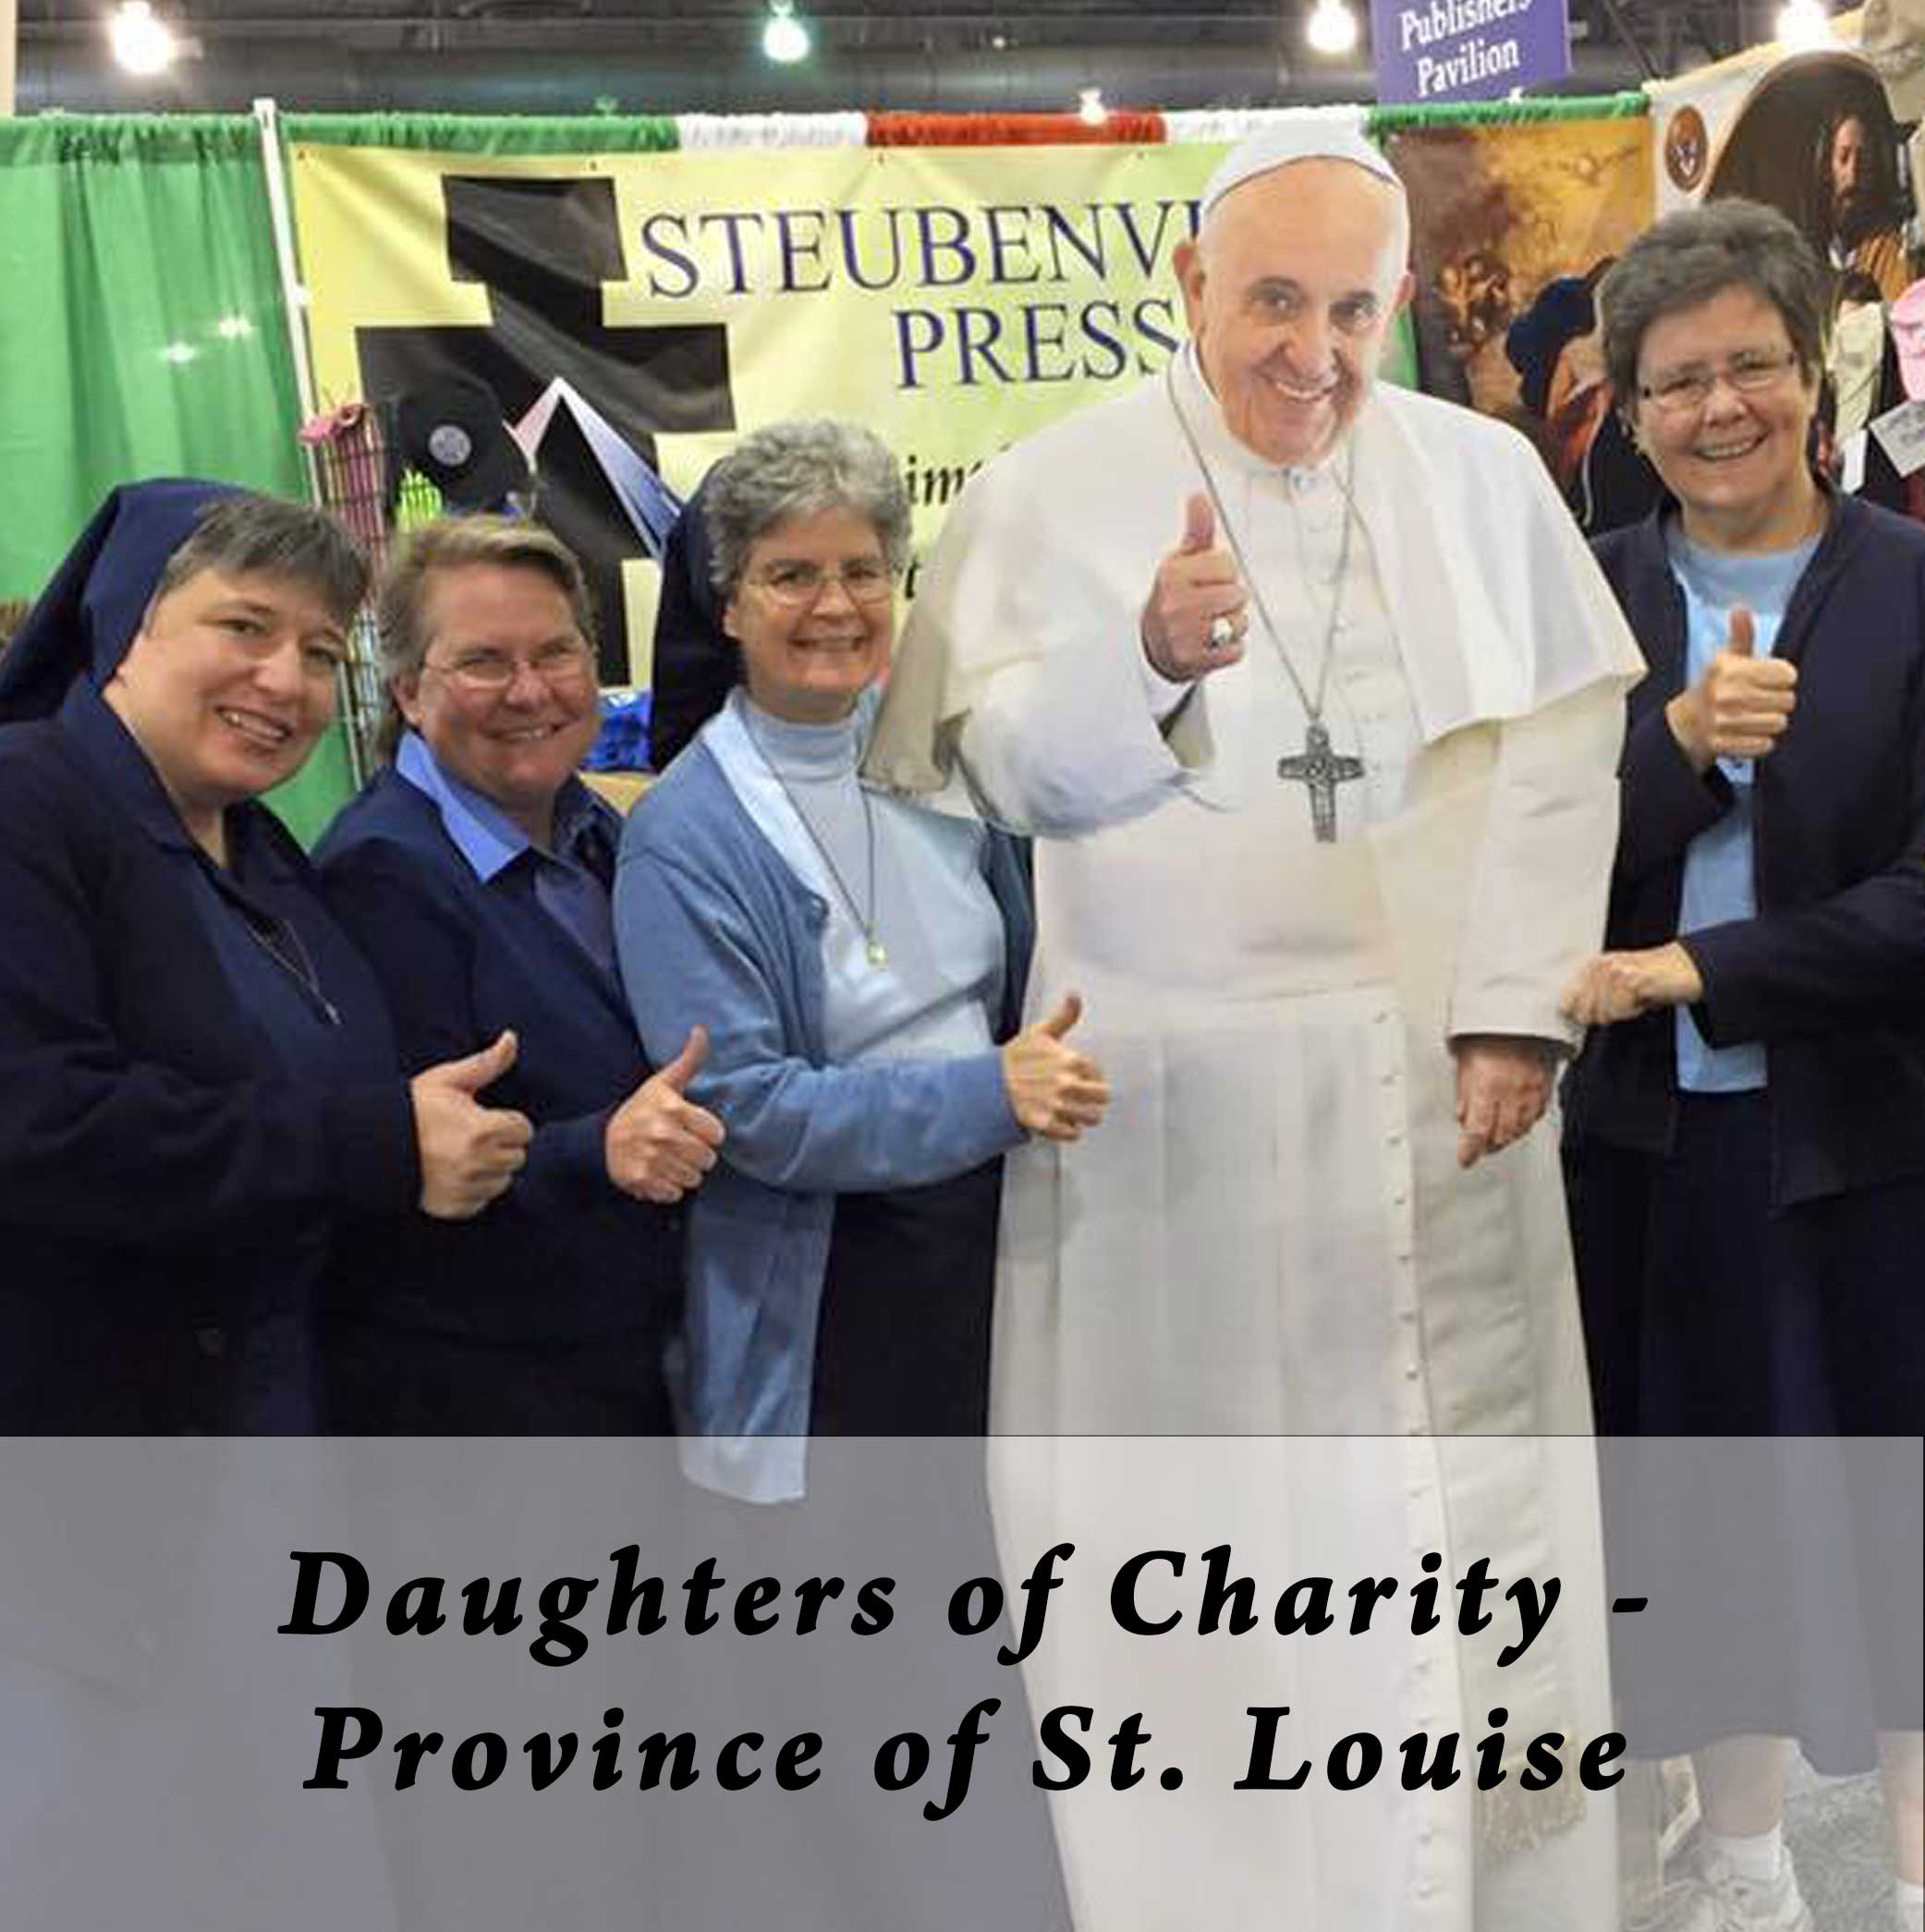 Daughters-of-Charity.jpg